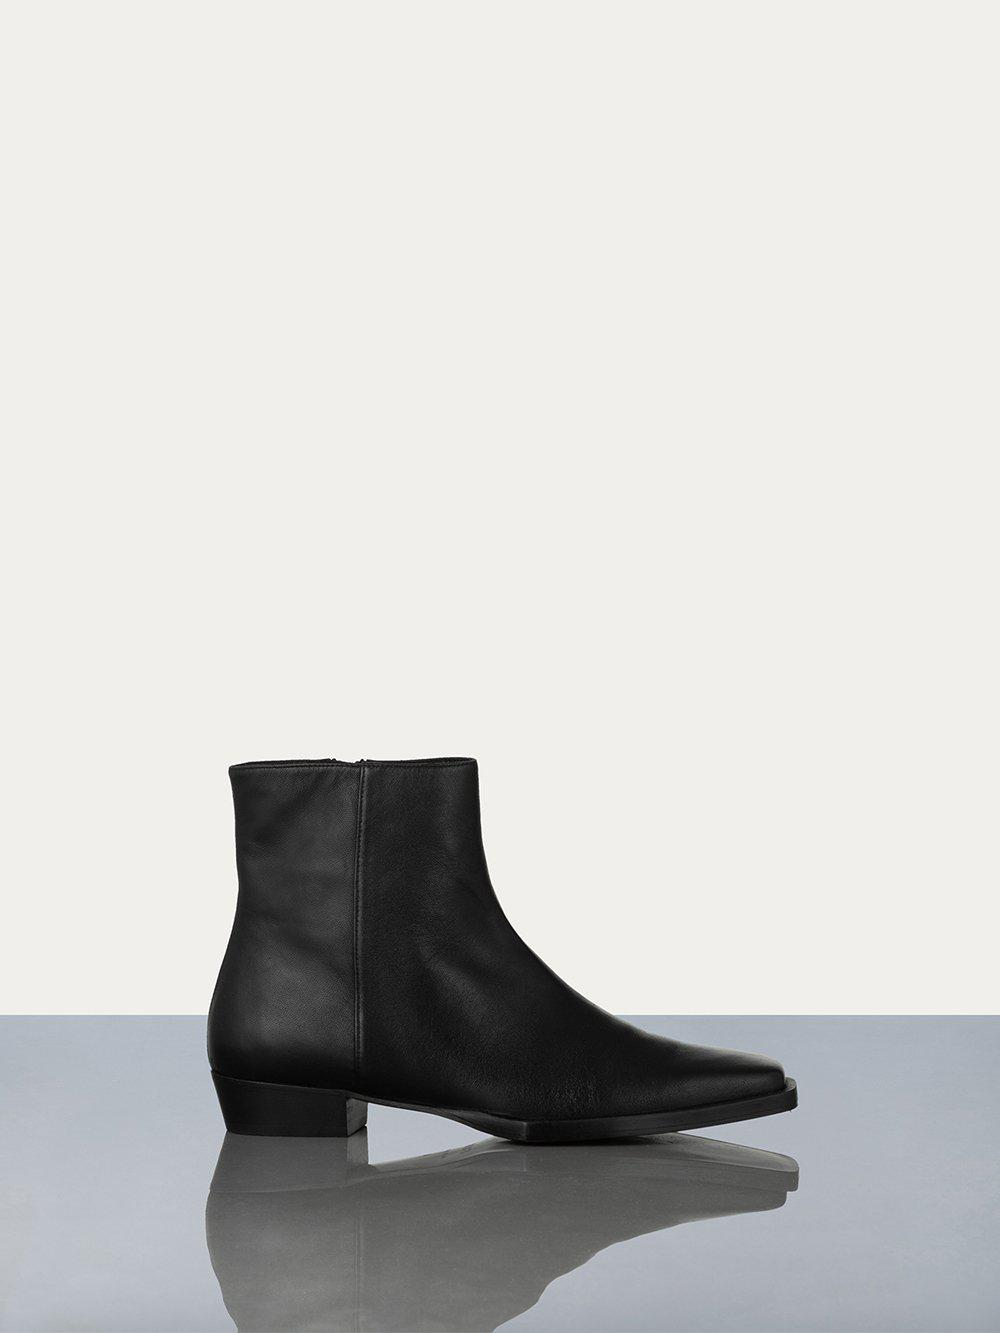 Le Maddox Bootie